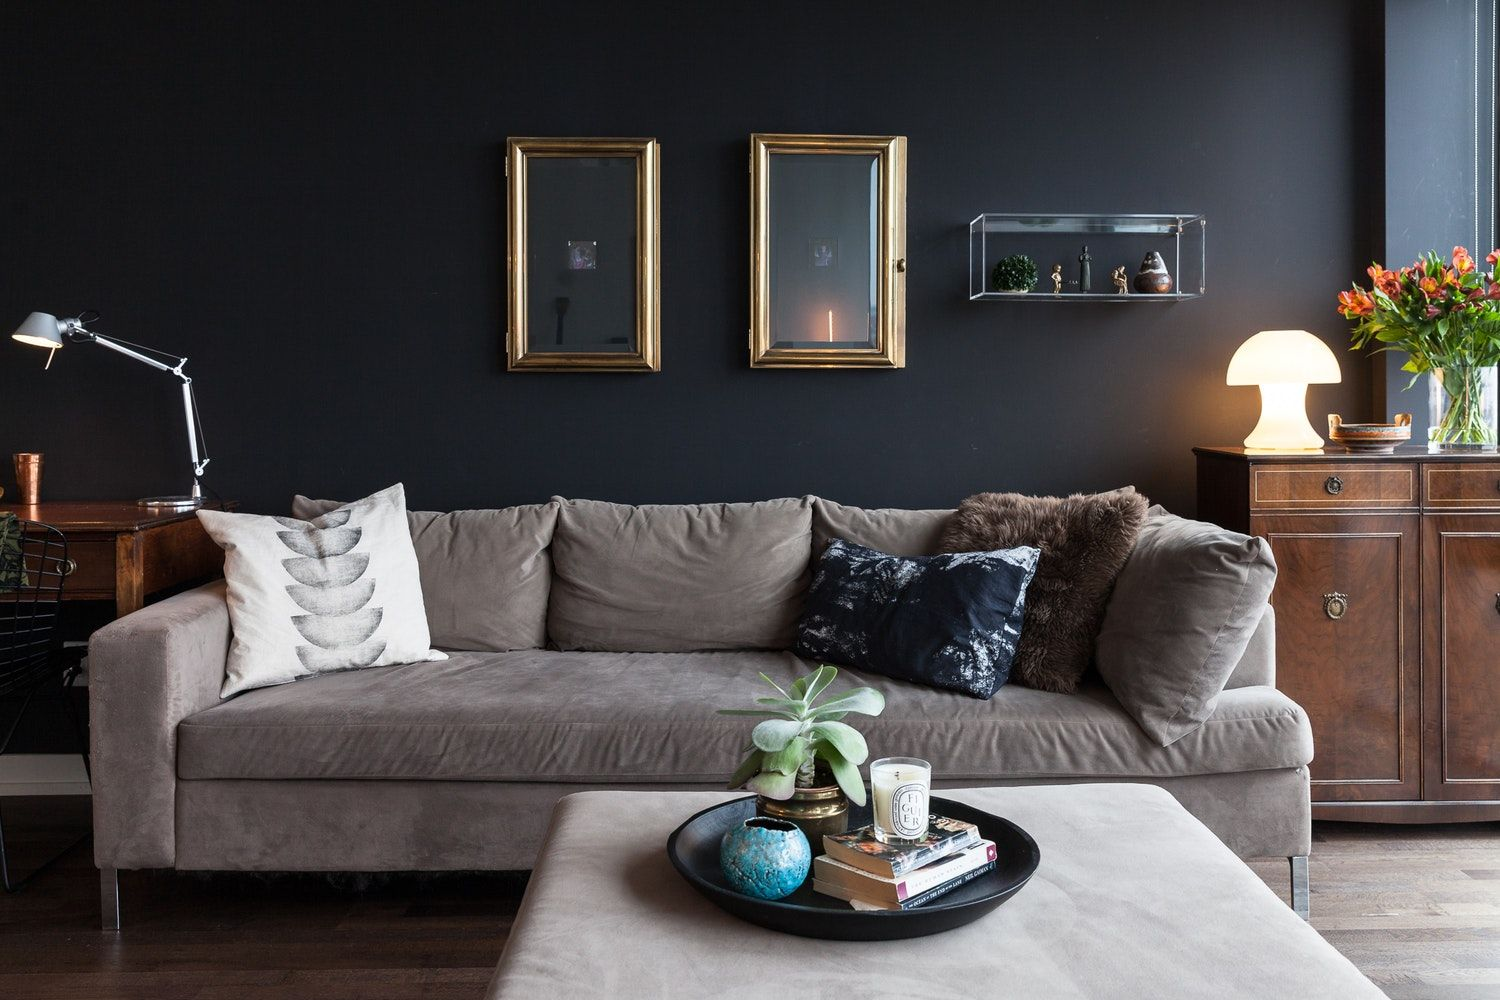 The Top 10 Home Trends For Fall According To Designers Home Remodeling And Decoration Dark Living Rooms Home Decor Trends Living Room Decor